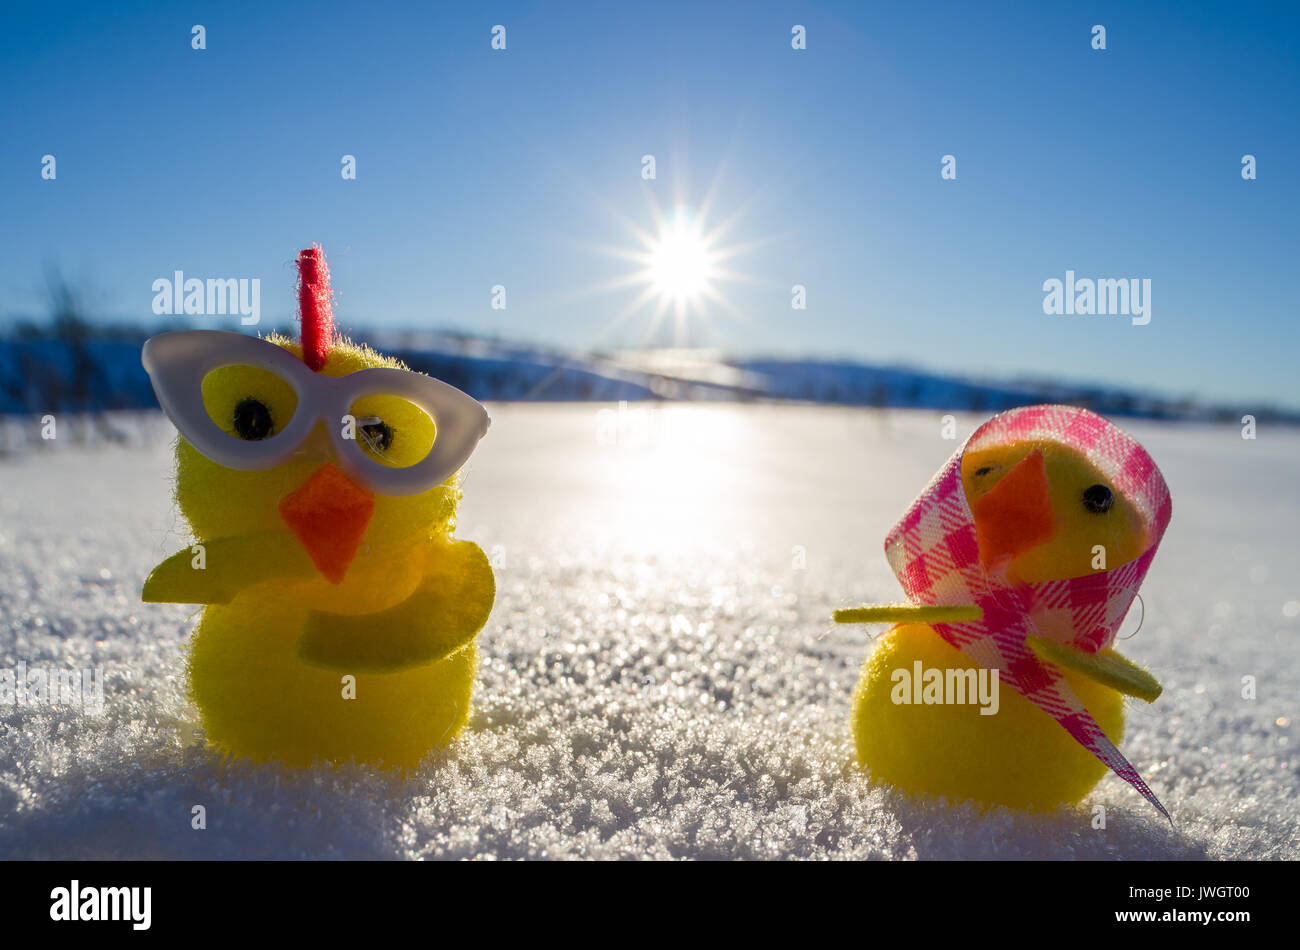 Two yellow easter chicken chickens - Stock Image